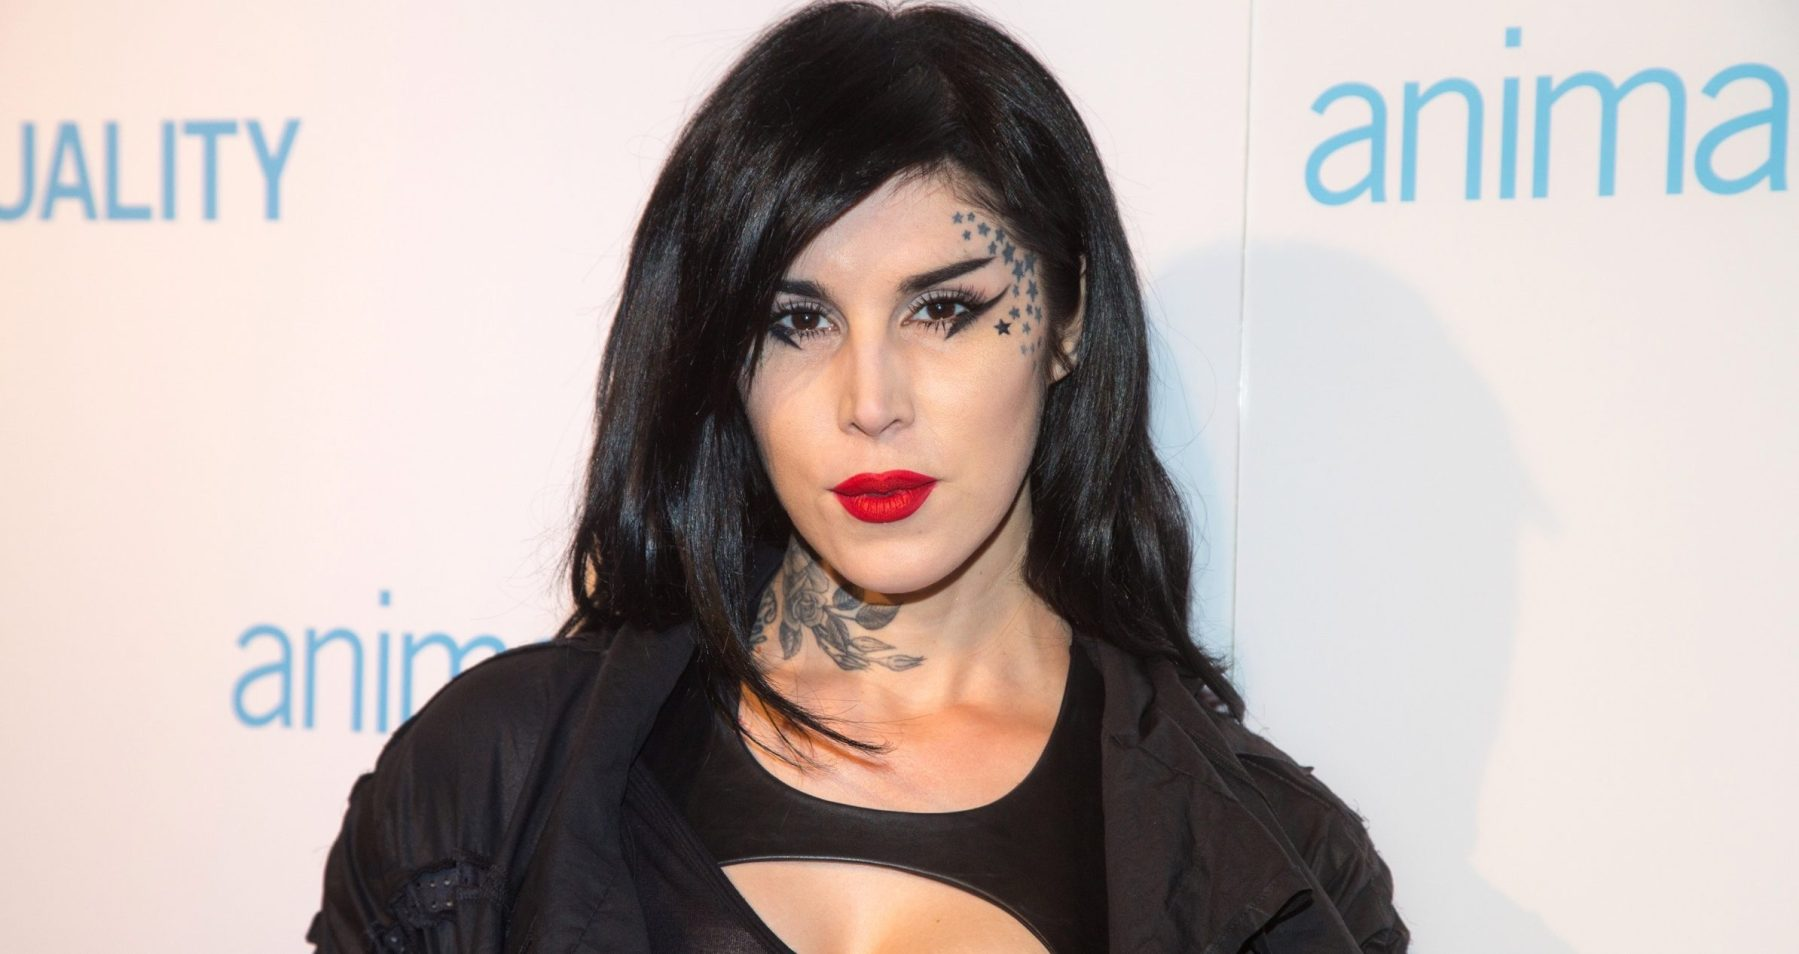 Kat Von D arrives to the Animal Equality Global Action Annual Gala at The Beverly Hilton Hotel on December 2, 2017 in Beverly Hills, California.  (Photo by Gabriel Olsen/FilmMagic)